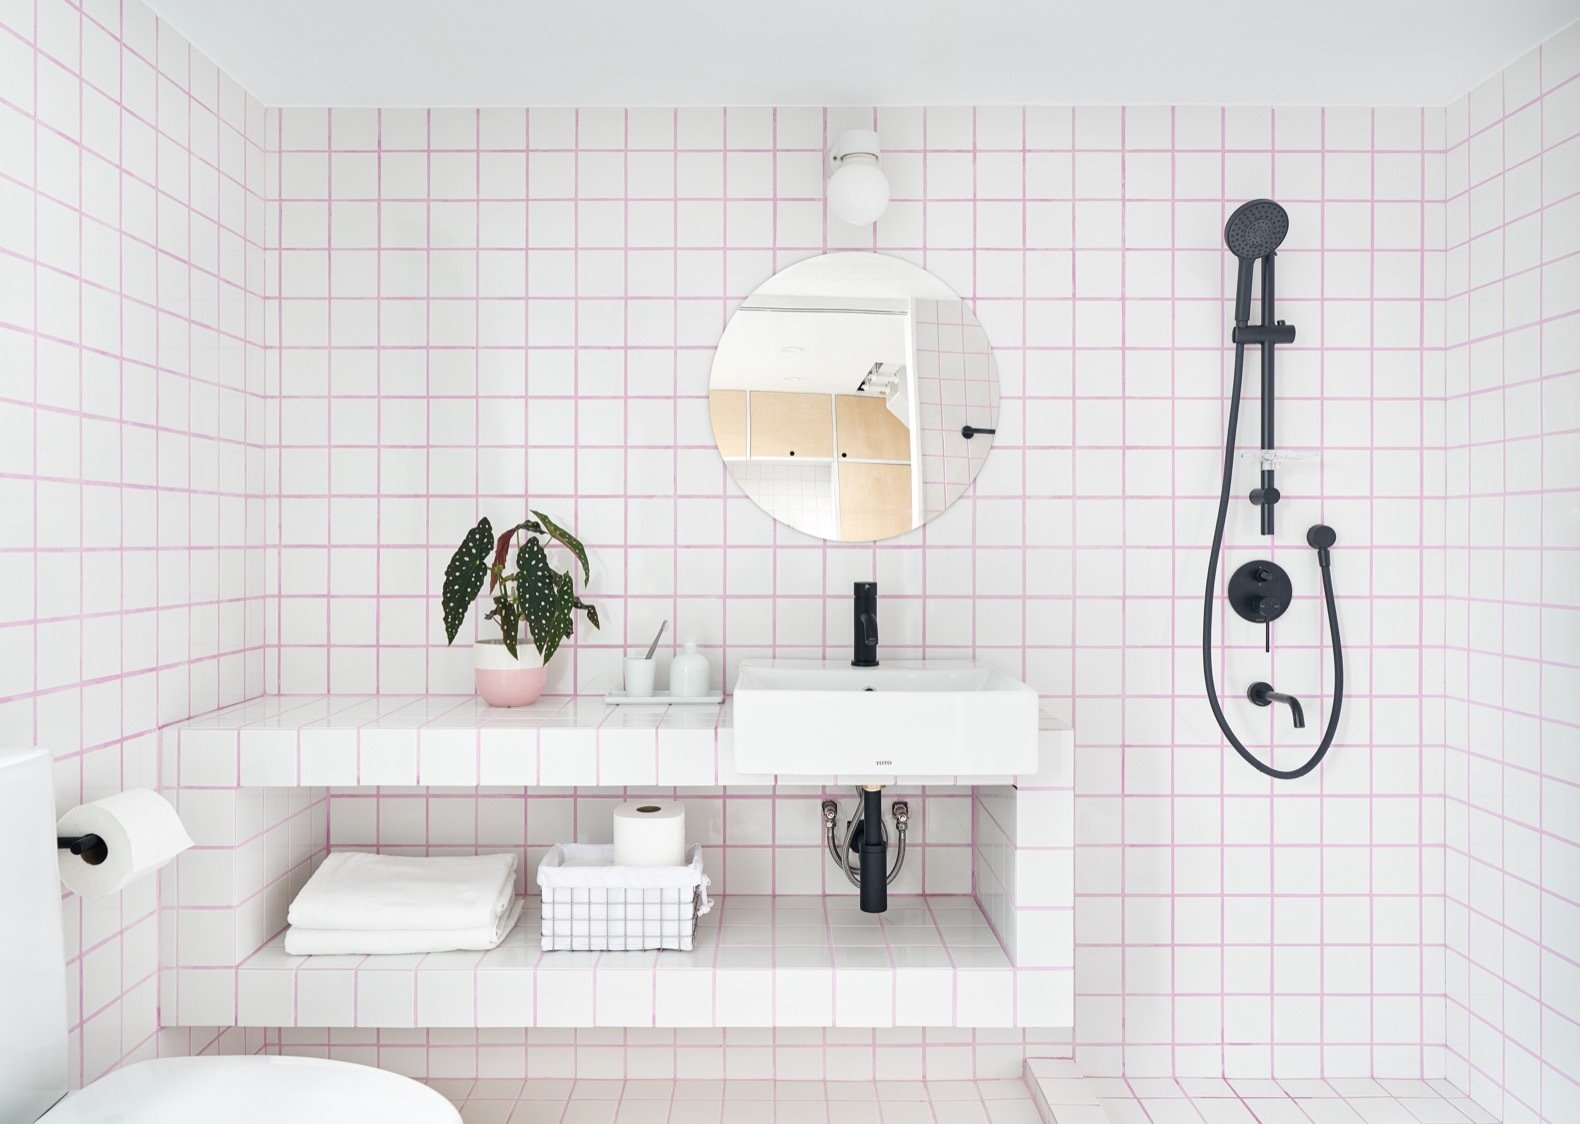 Bath Room, Ceramic Tile Floor, Vessel Sink, Tile Counter, Ceramic Tile Wall, Two Piece Toilet, Open Shower, and Wall Lighting The colored tile grout was sourced from Grout360. The tiles are from RAK Ceramics.    Best Photos from A Tiny Taipei Apartment Pursues Muji-Like Minimalism For $35K